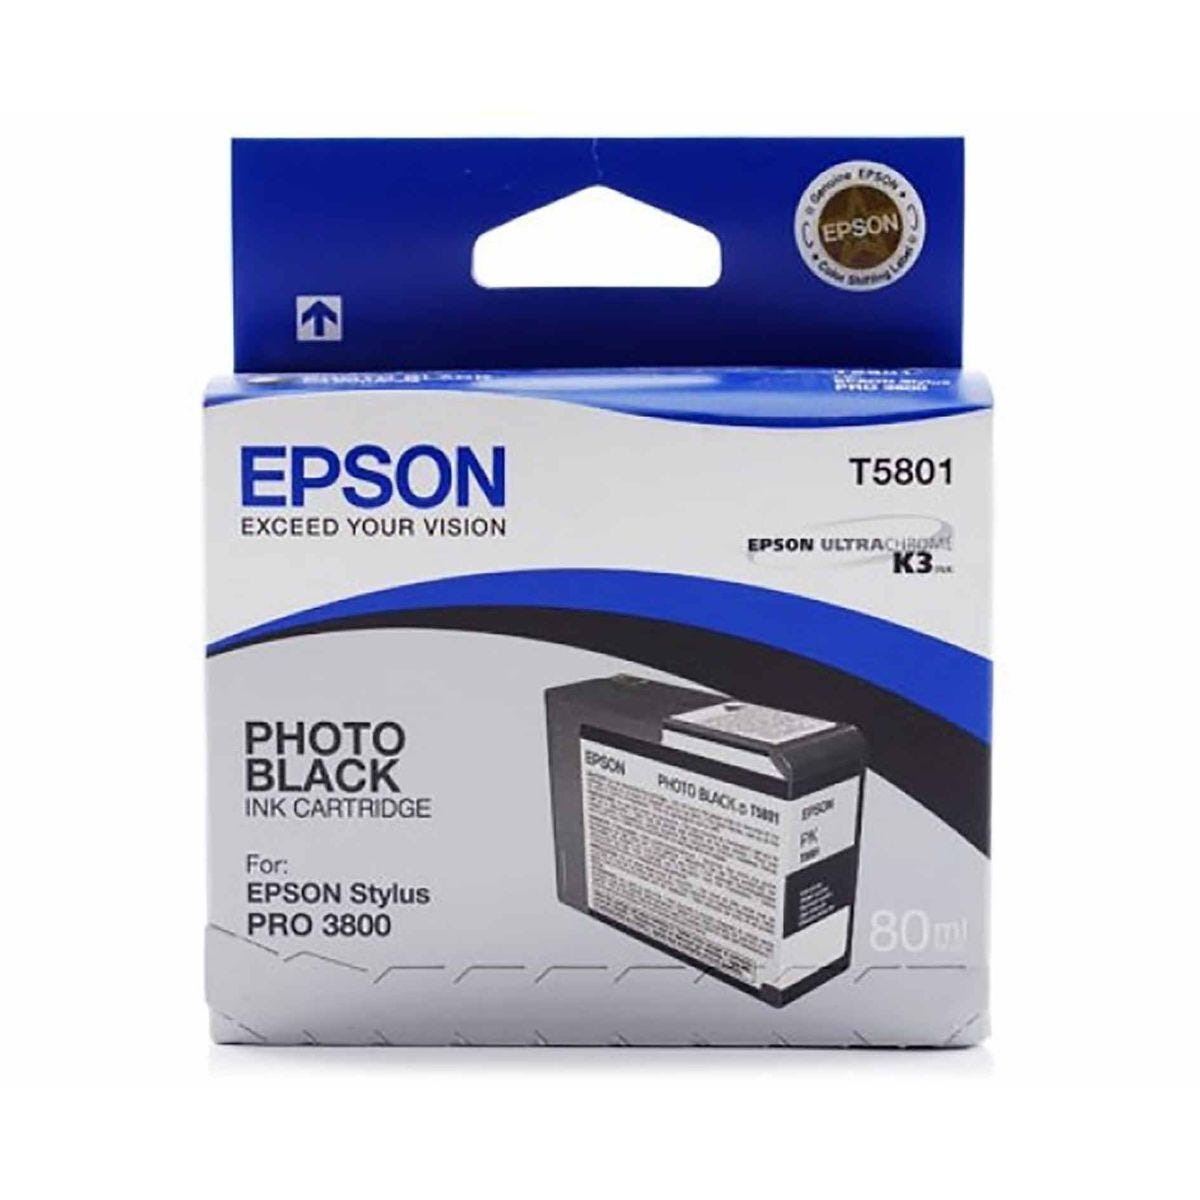 Epson PRO3800 Photo Ink Black